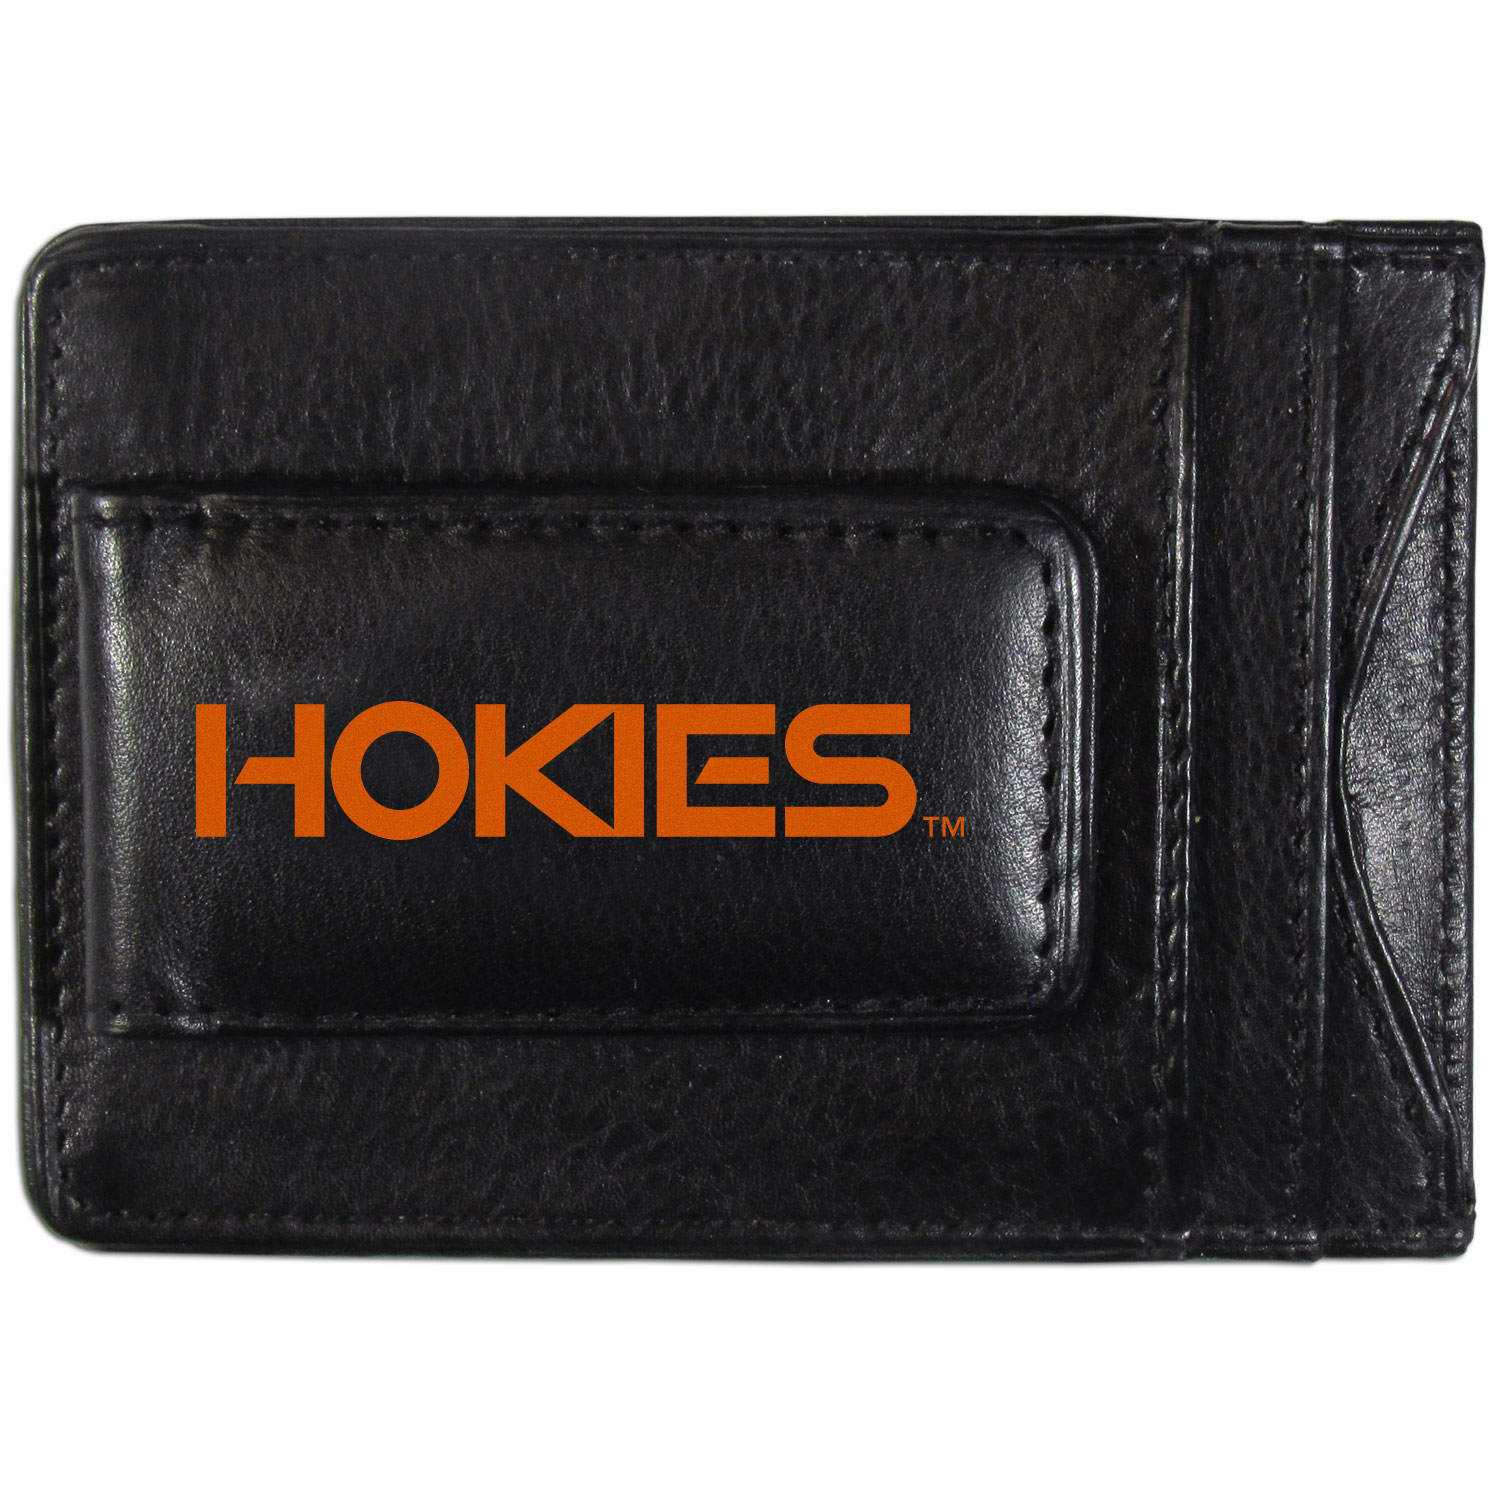 Virginia Tech Hokies Logo Leather Cash and Cardholder - This super slim leather wallet lets you have all the benefits of a money clip while keeping the organization of a wallet. On one side of this front pocket wallet there is a strong, magnetic money clip to keep your cash easily accessible and the?Virginia Tech Hokies team logo on the front. The versatile men's accessory is a perfect addition to your fan apparel.